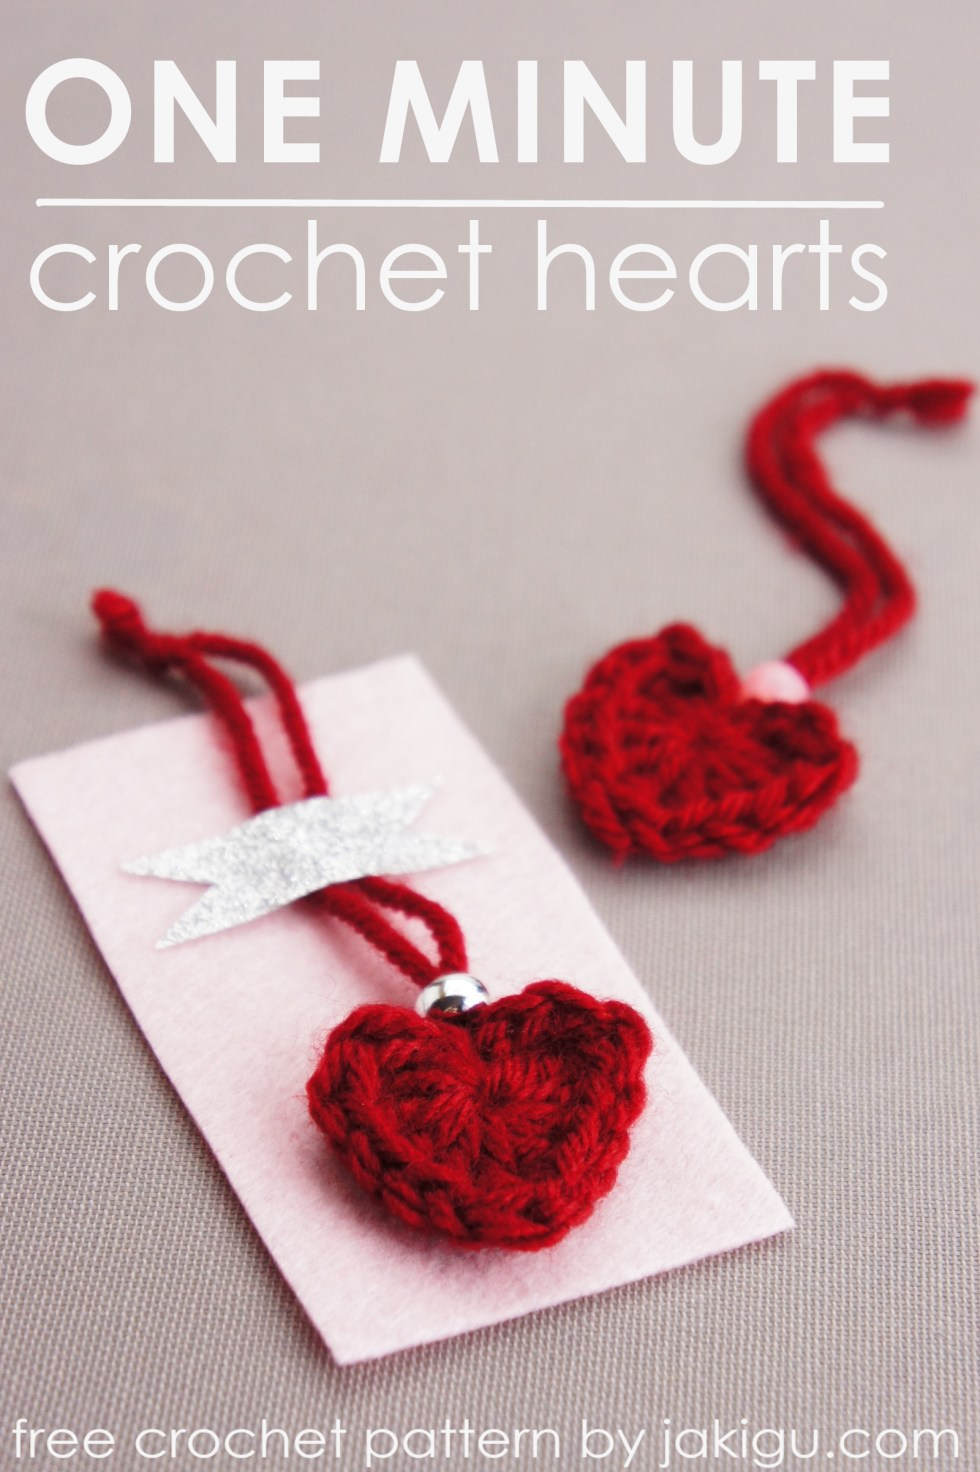 One minute crochet heart pattern | jakigu.com